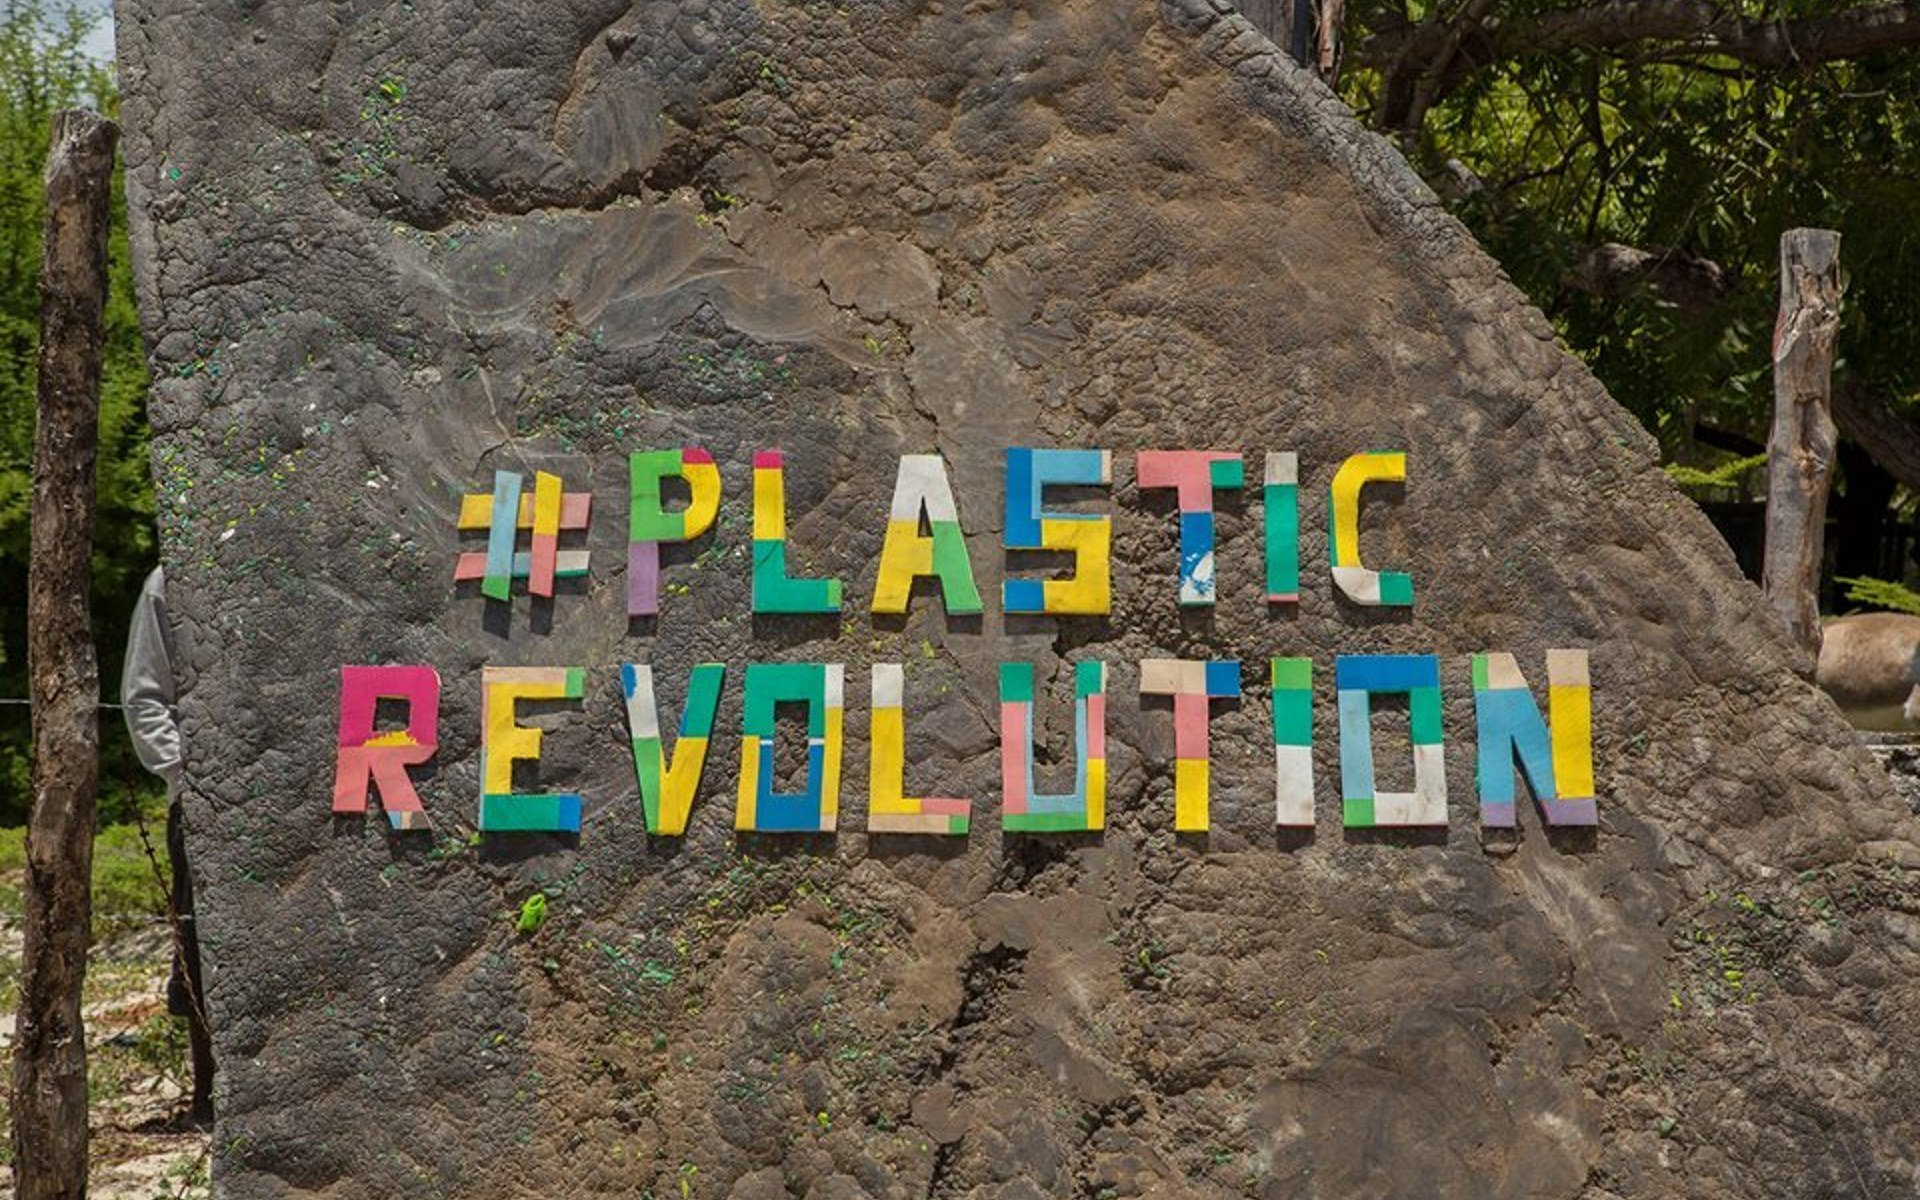 You too can be a part of this epic journey and the #PlasticRevolution by grabbing one of the limited spaces available for 2 week periods by joining the ongoing raffle at GoFundMe.com where the expedition's crowdfunding campaign is hoping to raise £25,000.